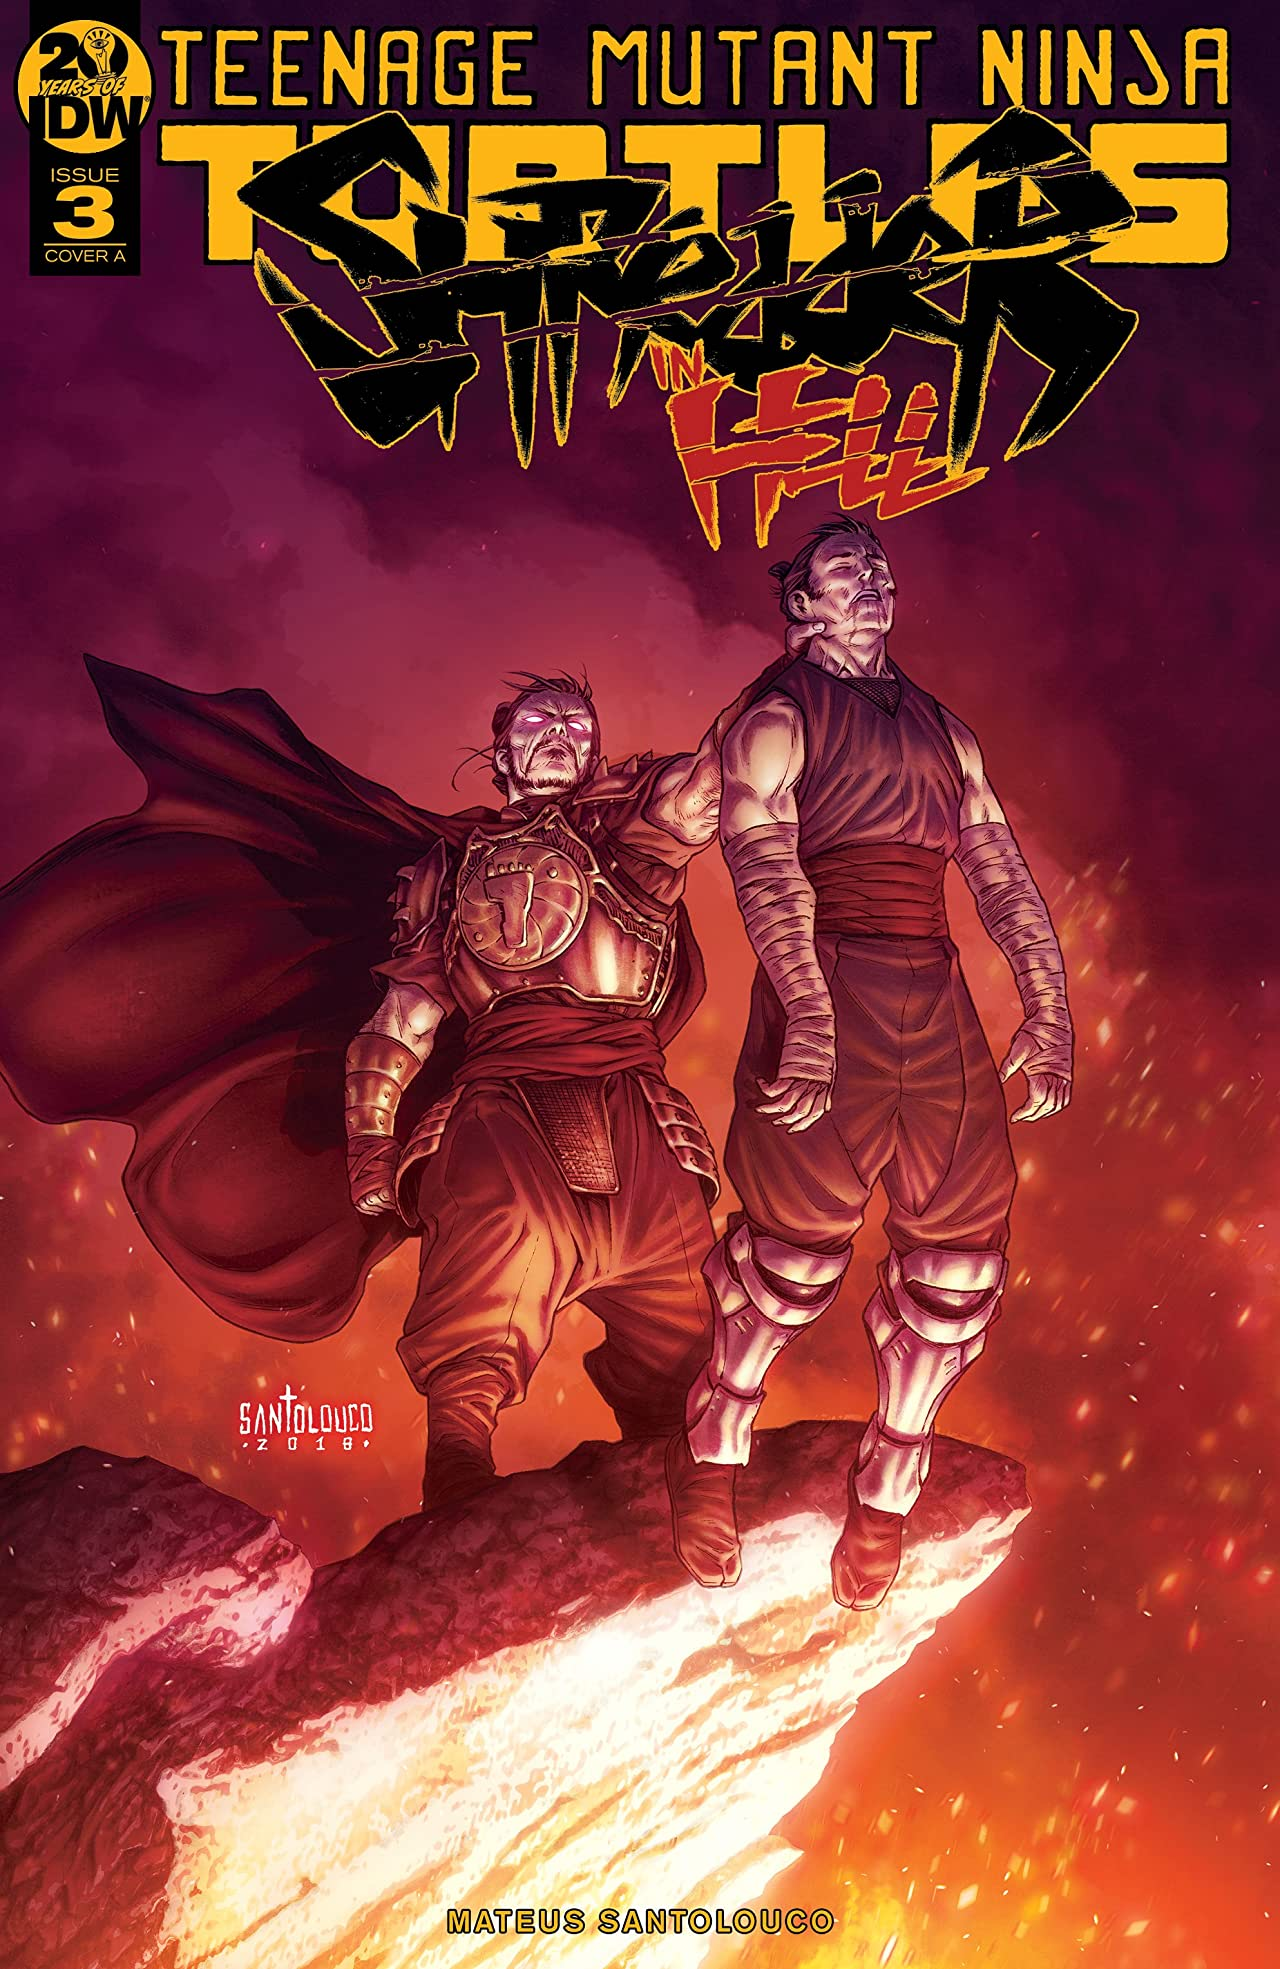 Teenage Mutant Ninja Turtles: Shredder in Hell #3 (of 5)